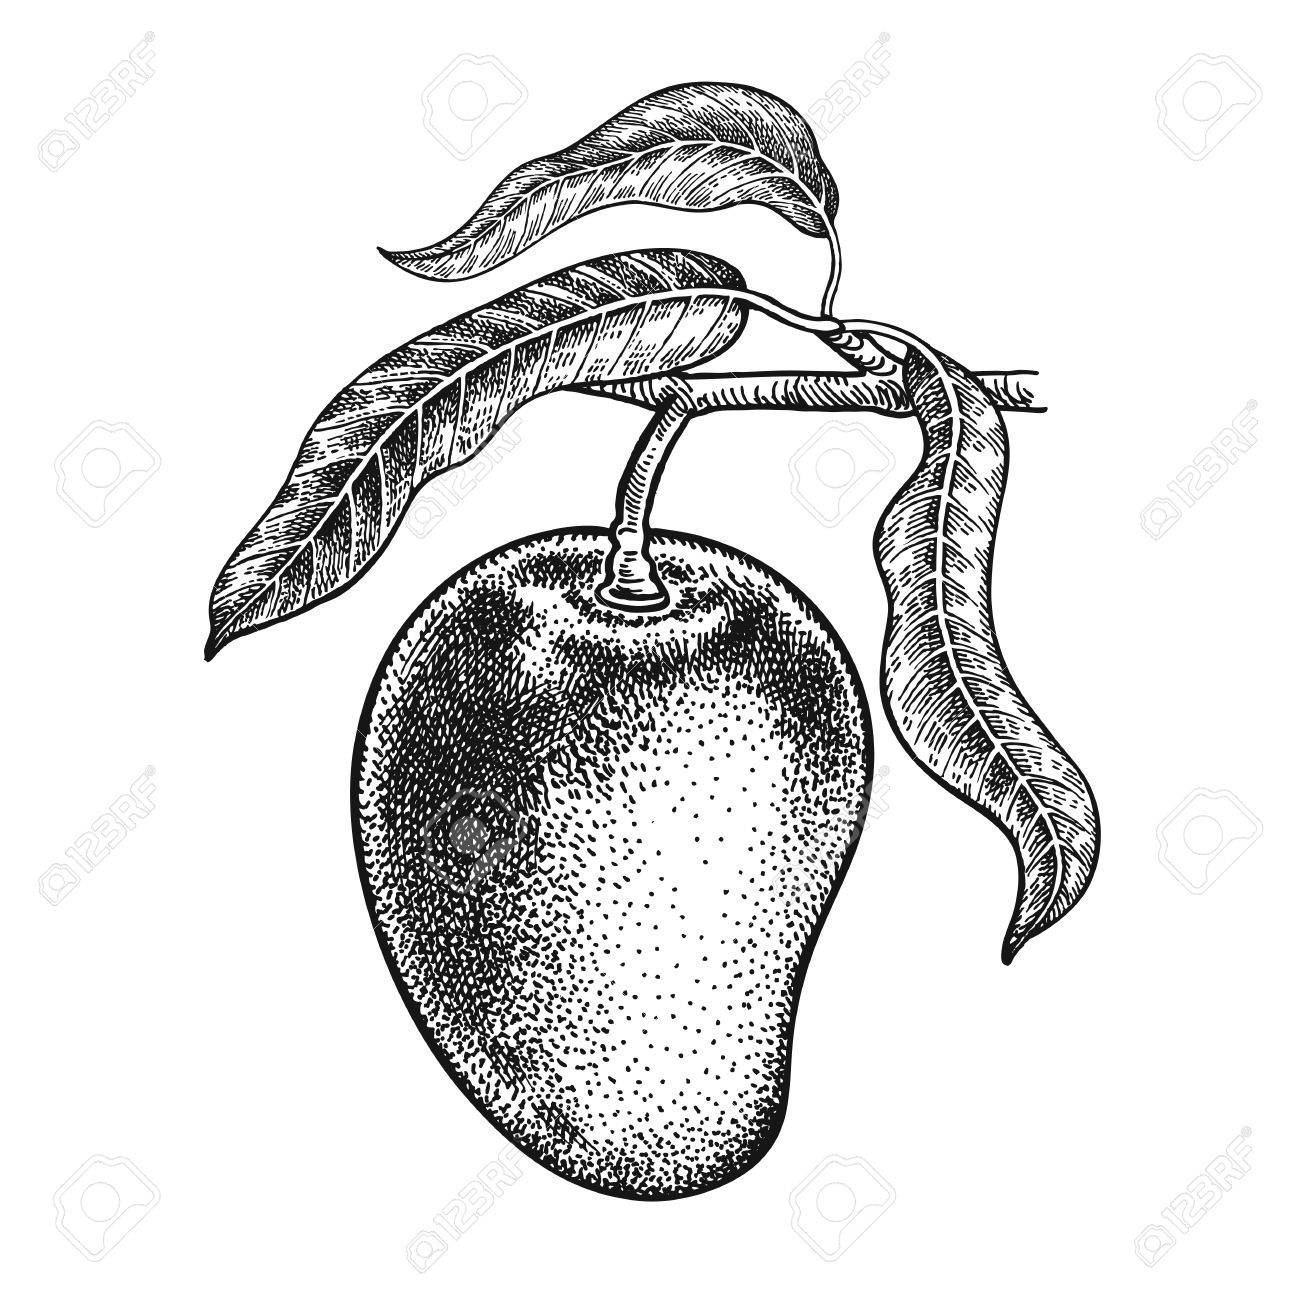 Vintage Black And White Engraving Mango Realistic Vector Illustration Plant Hand Drawing Fruit Leaf Branch Isolated On